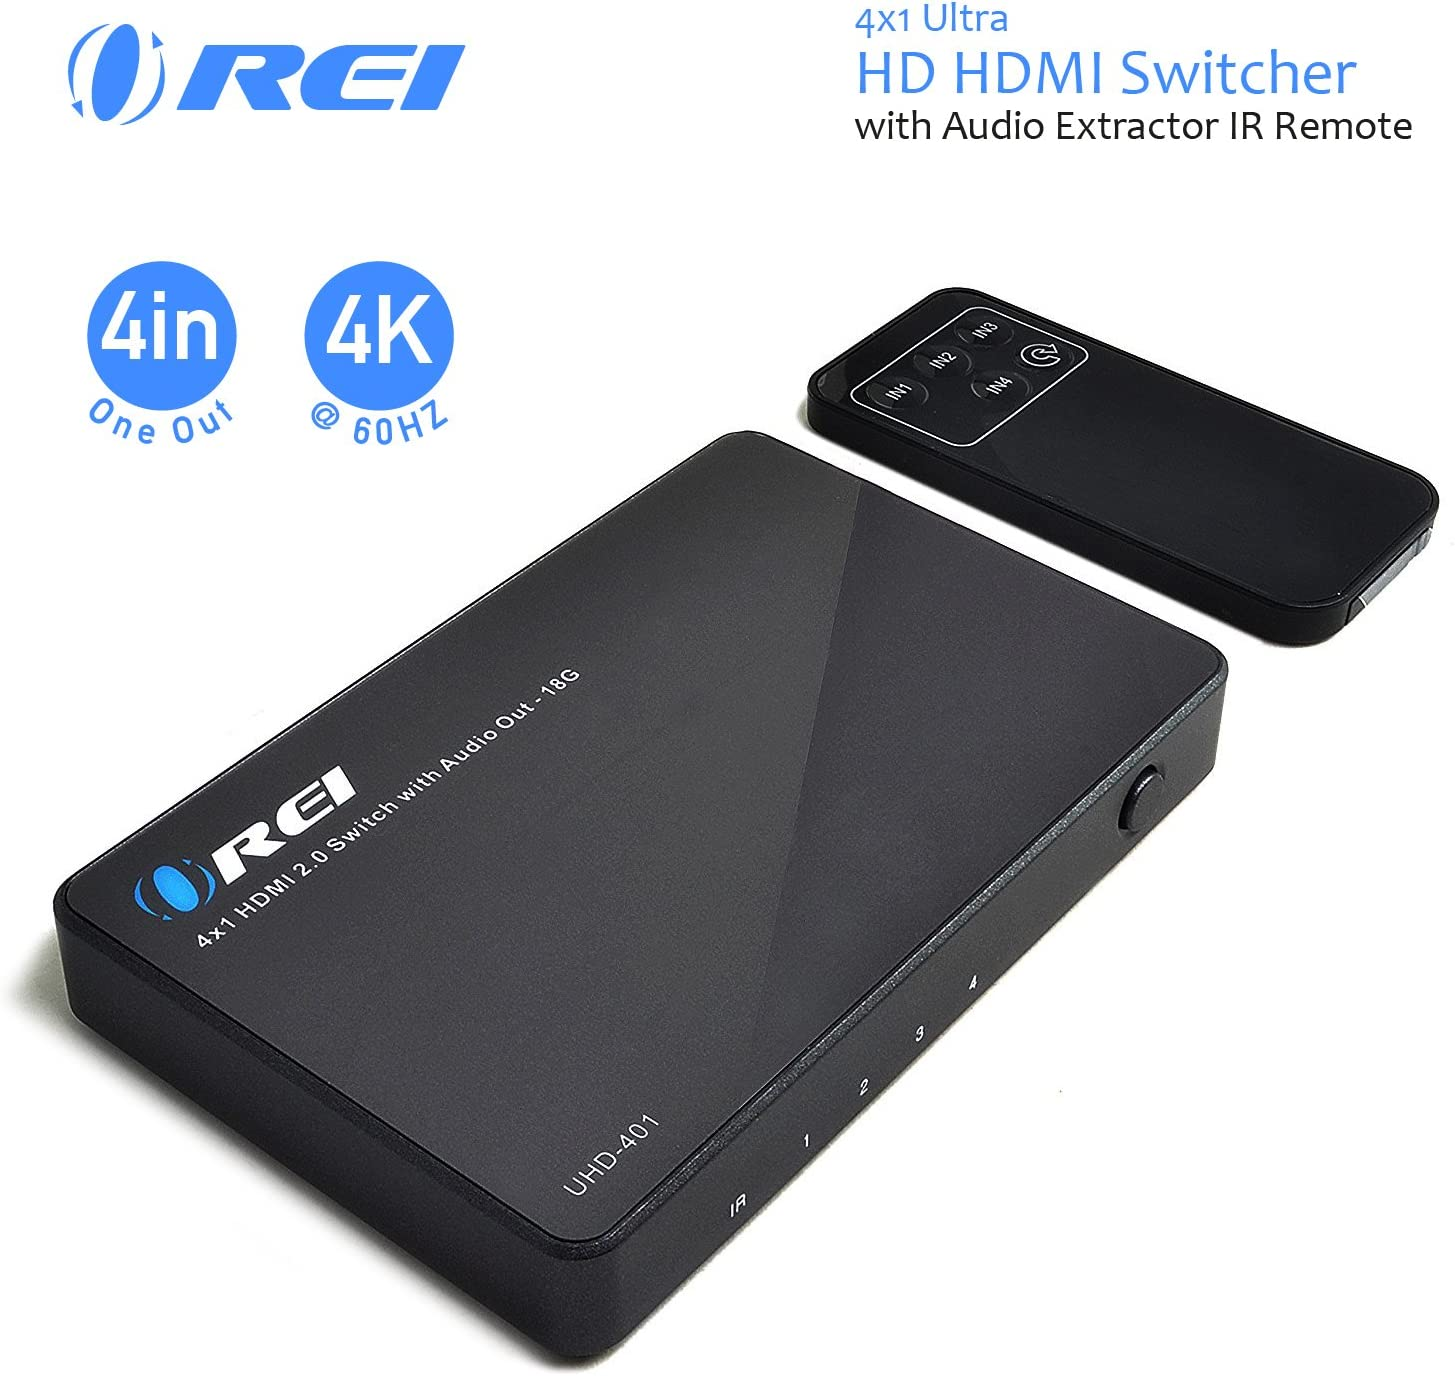 Orei Ultra HD HDMI 4 x 1 Switcher 18G Audio Extractor IR Remote - Supports Upto 4K @ 60Hz - (4 Input, 1 Output) Switch, Hub, Port for Cable, HD TV, Laptop, MacBook & More (UHD-401)